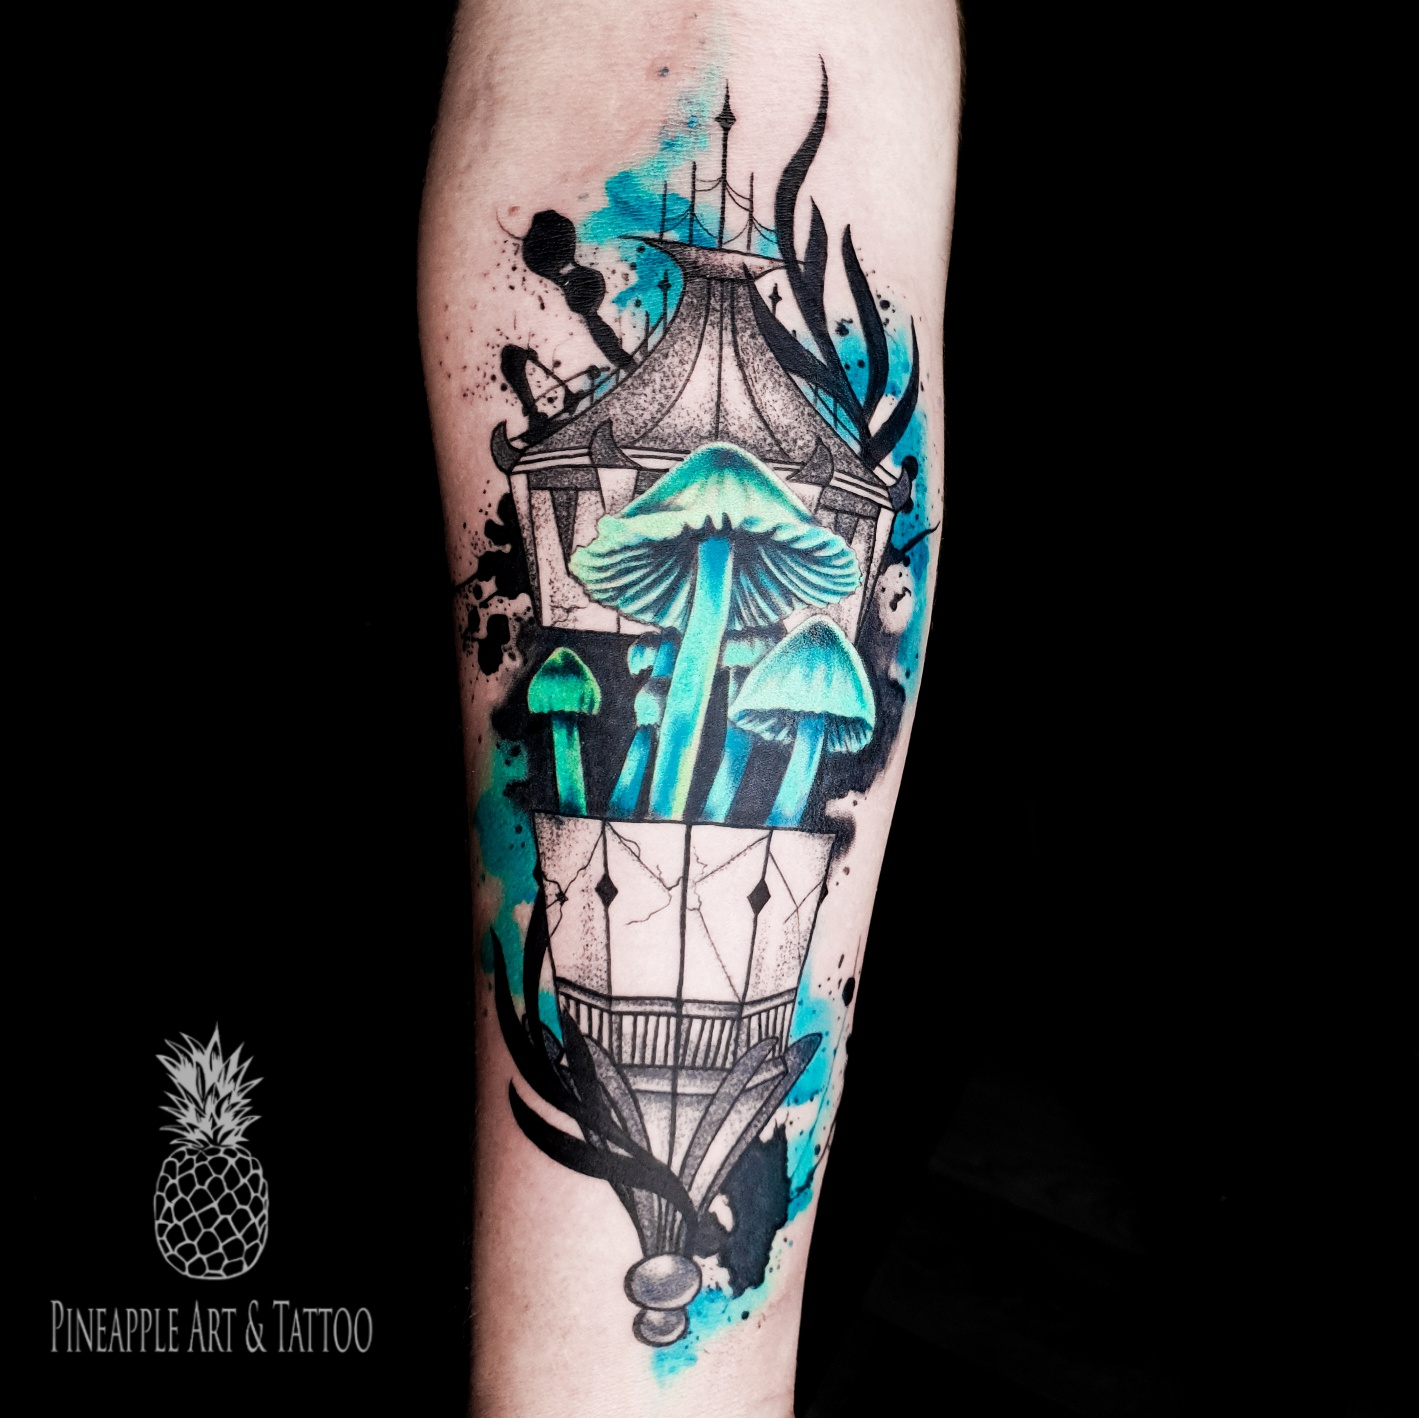 Witchy lantern and mushrooms tattoo